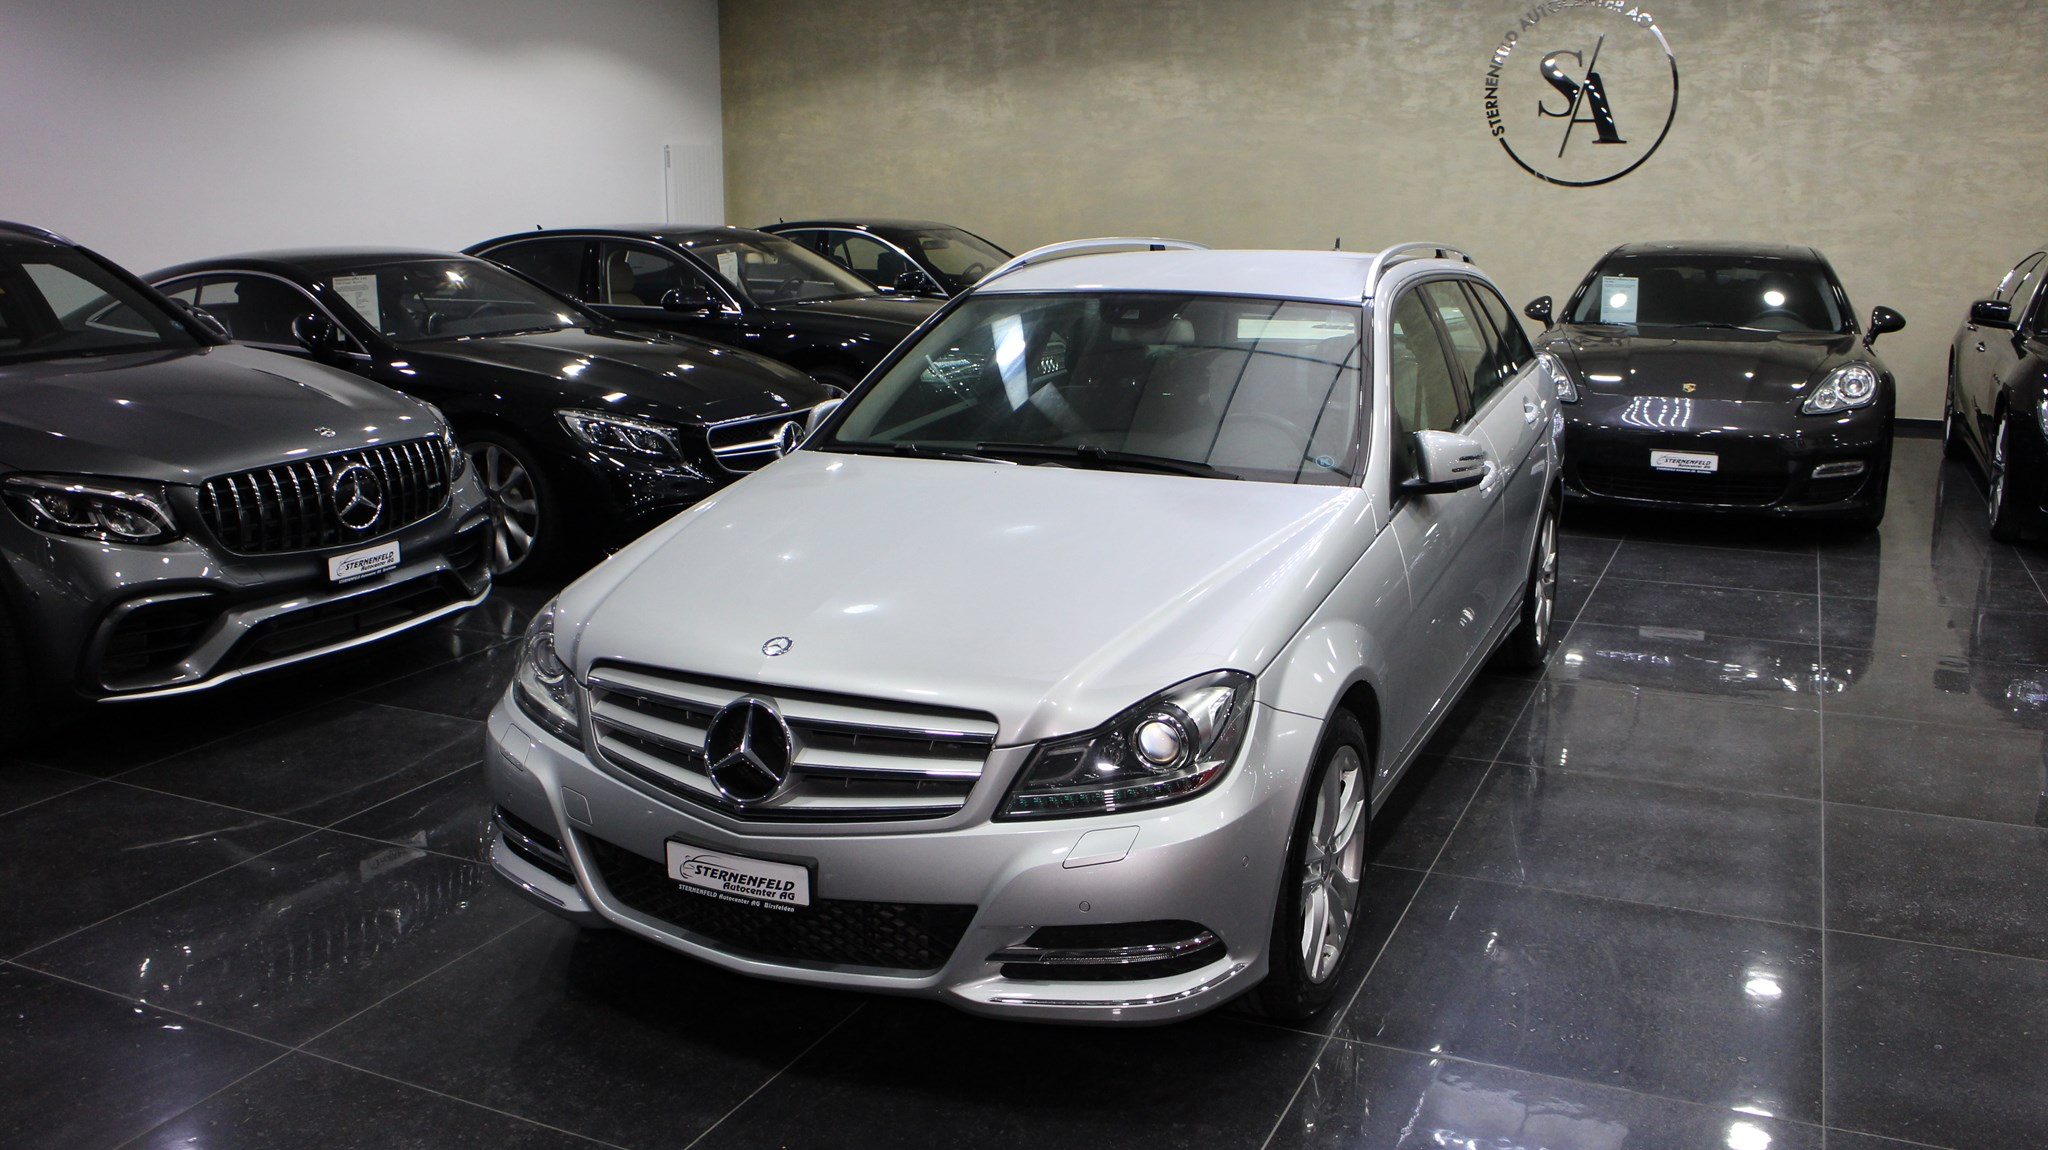 estate Mercedes-Benz C-Klasse C 250 CDI Avantgarde 4Matic 7G-Tronic